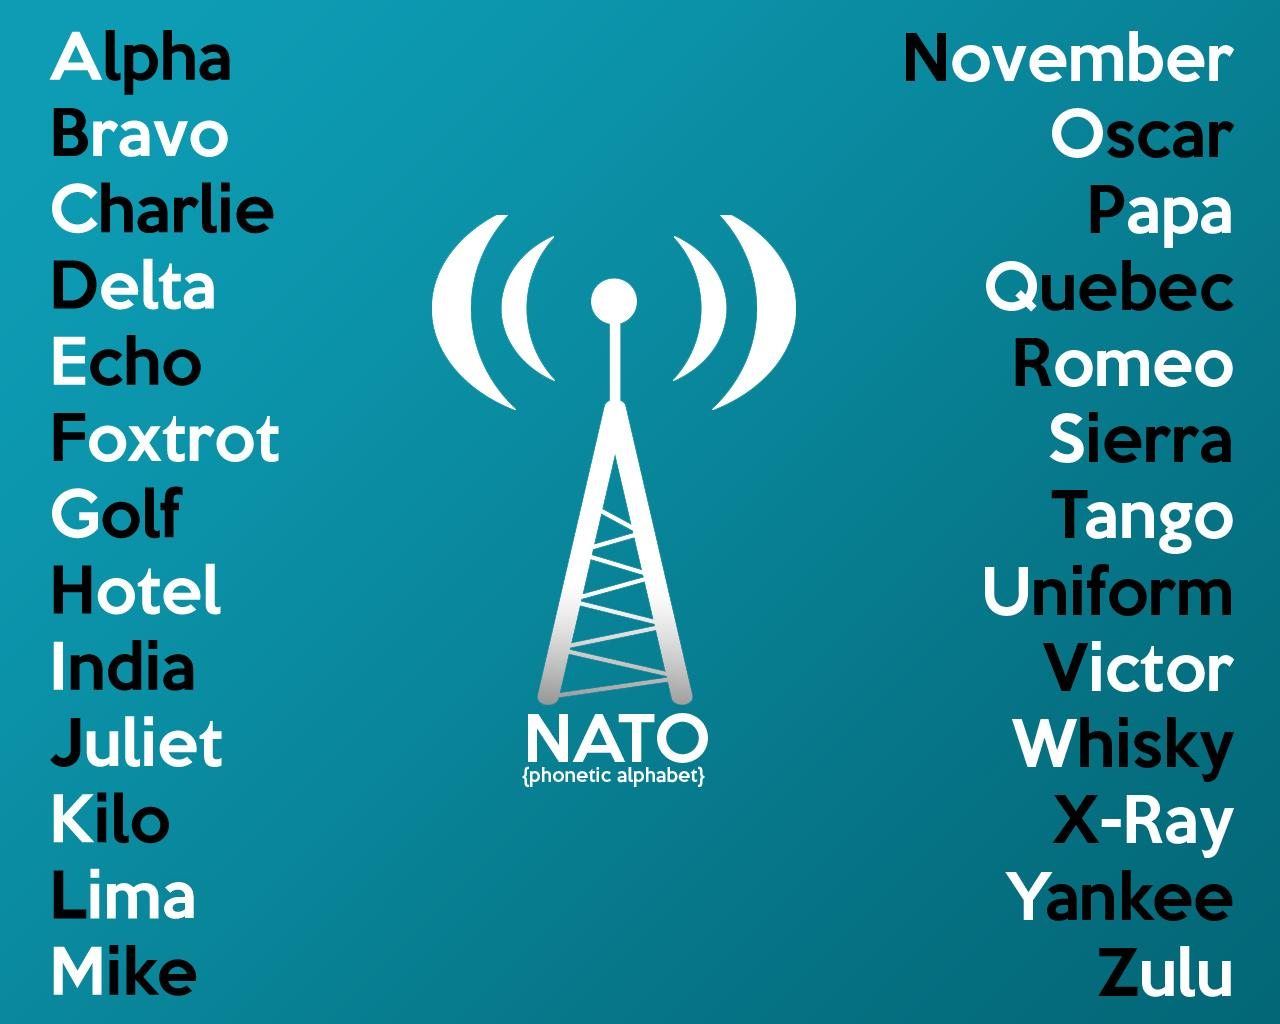 The NATO Phonetic Alphabet: Alfa, Bravo, Charlie